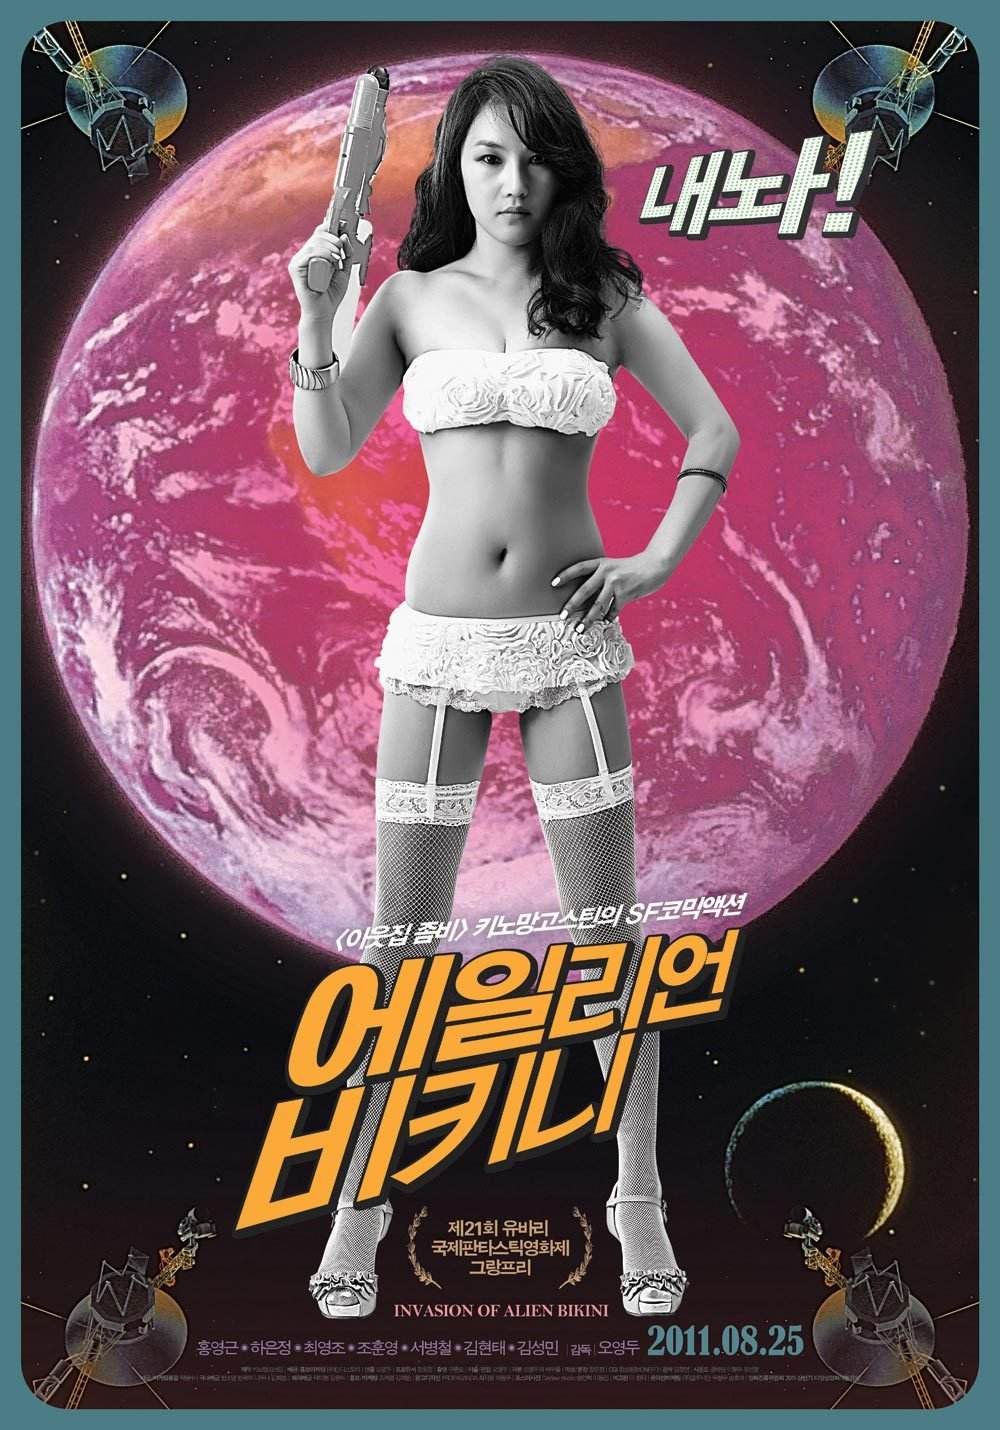 Invasion of alien bikini poster